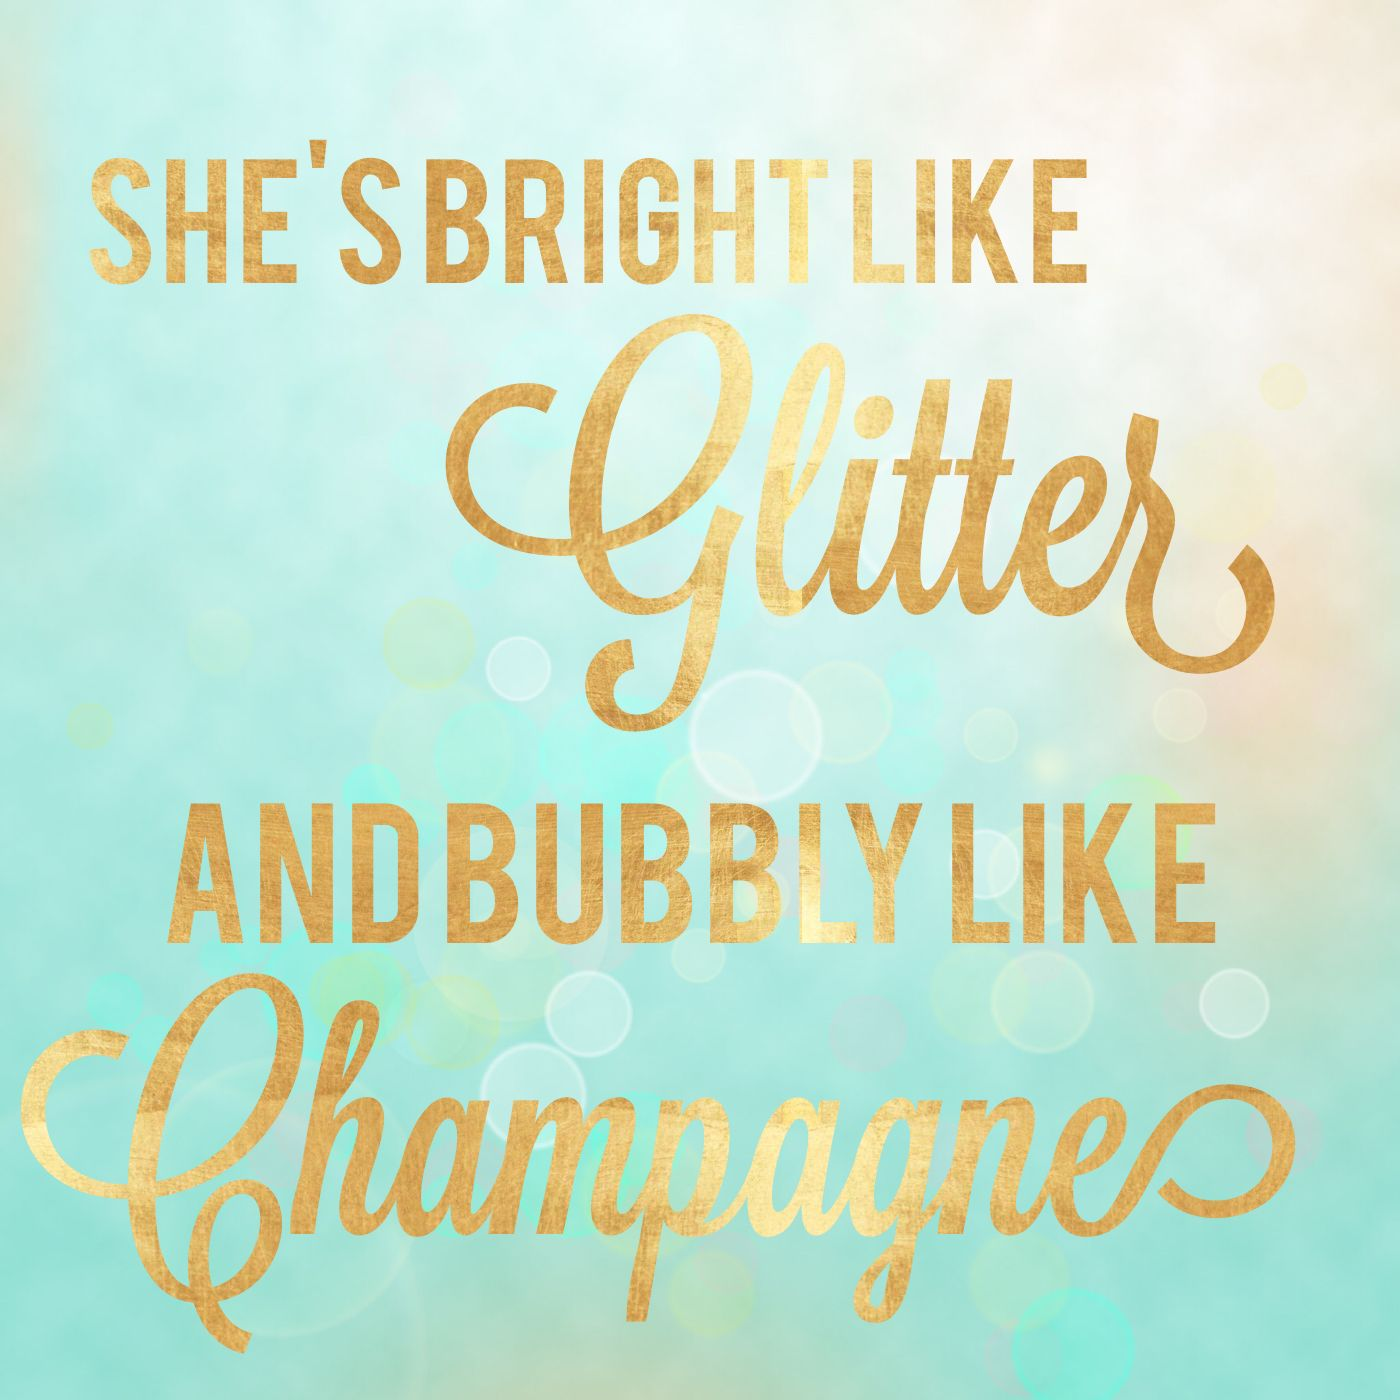 Sparkle Quotes Sparkle quote : She's bright like glitter and bubbly like  Sparkle Quotes